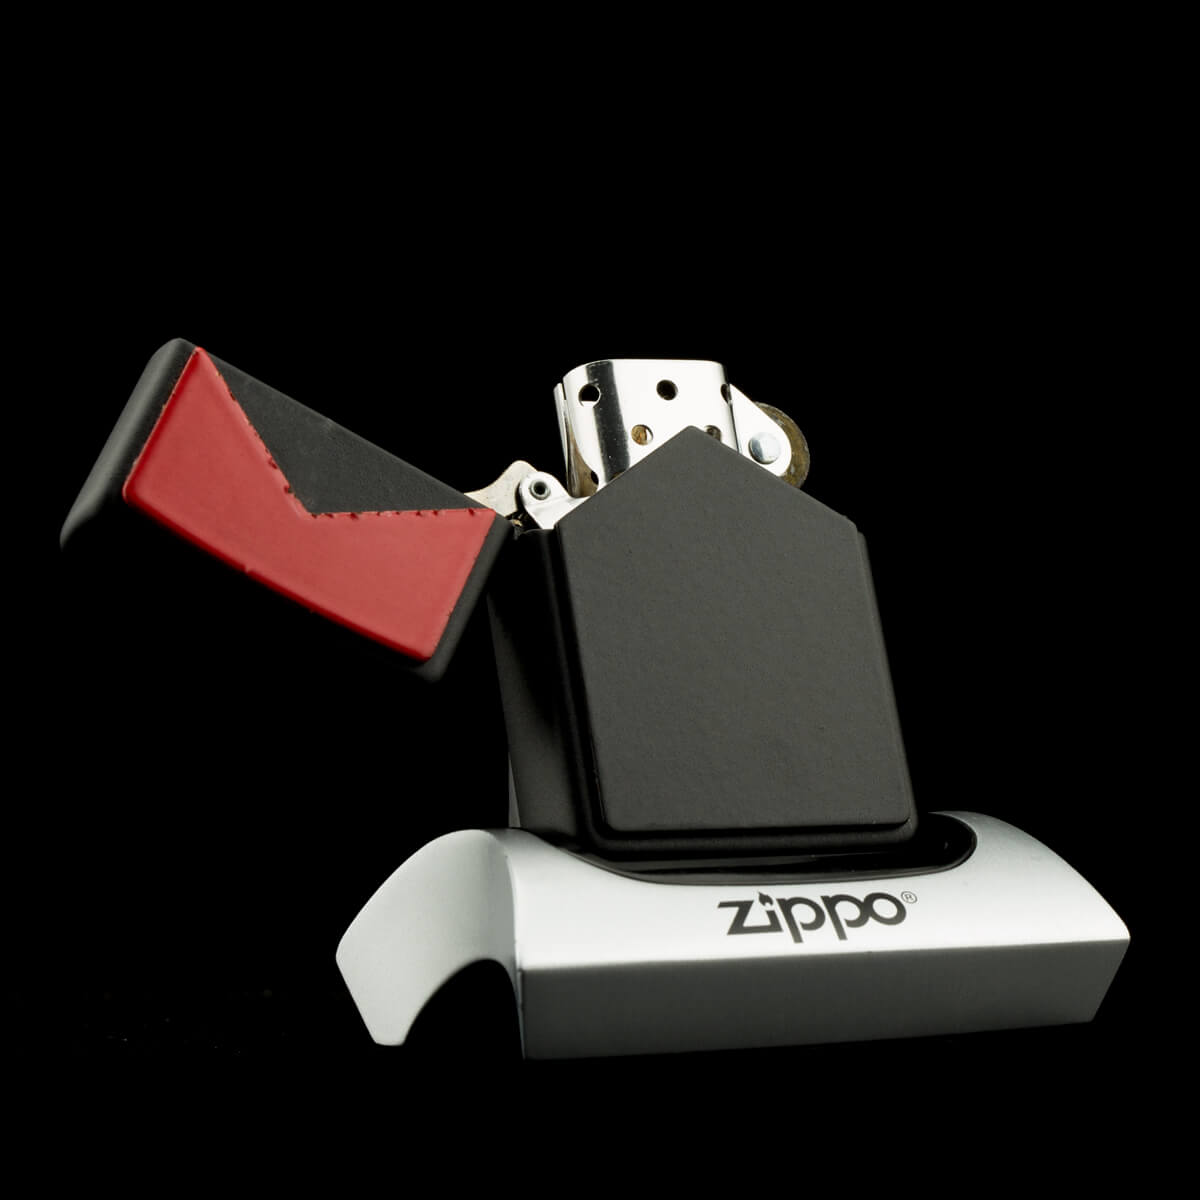 hot-quet-zippo-marlboro-red-black-double-sides-emblem-xii-1996